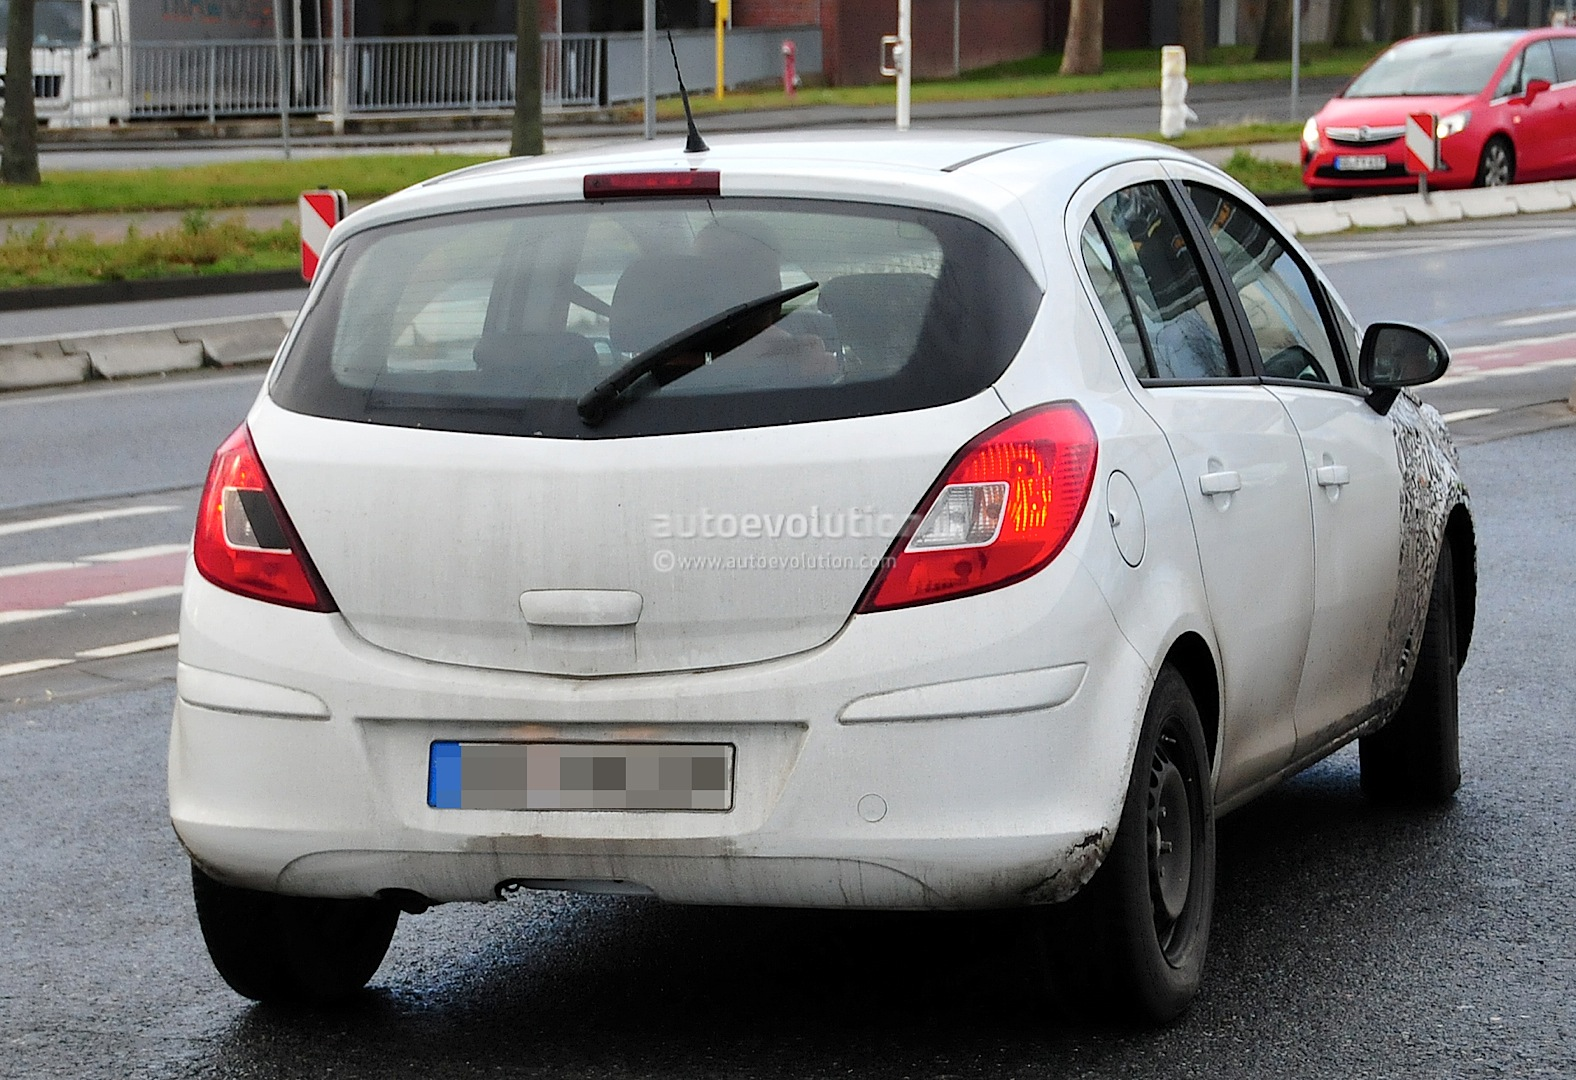 spyshots 2014 opel corsa facelift interior new dash and console autoevolution. Black Bedroom Furniture Sets. Home Design Ideas